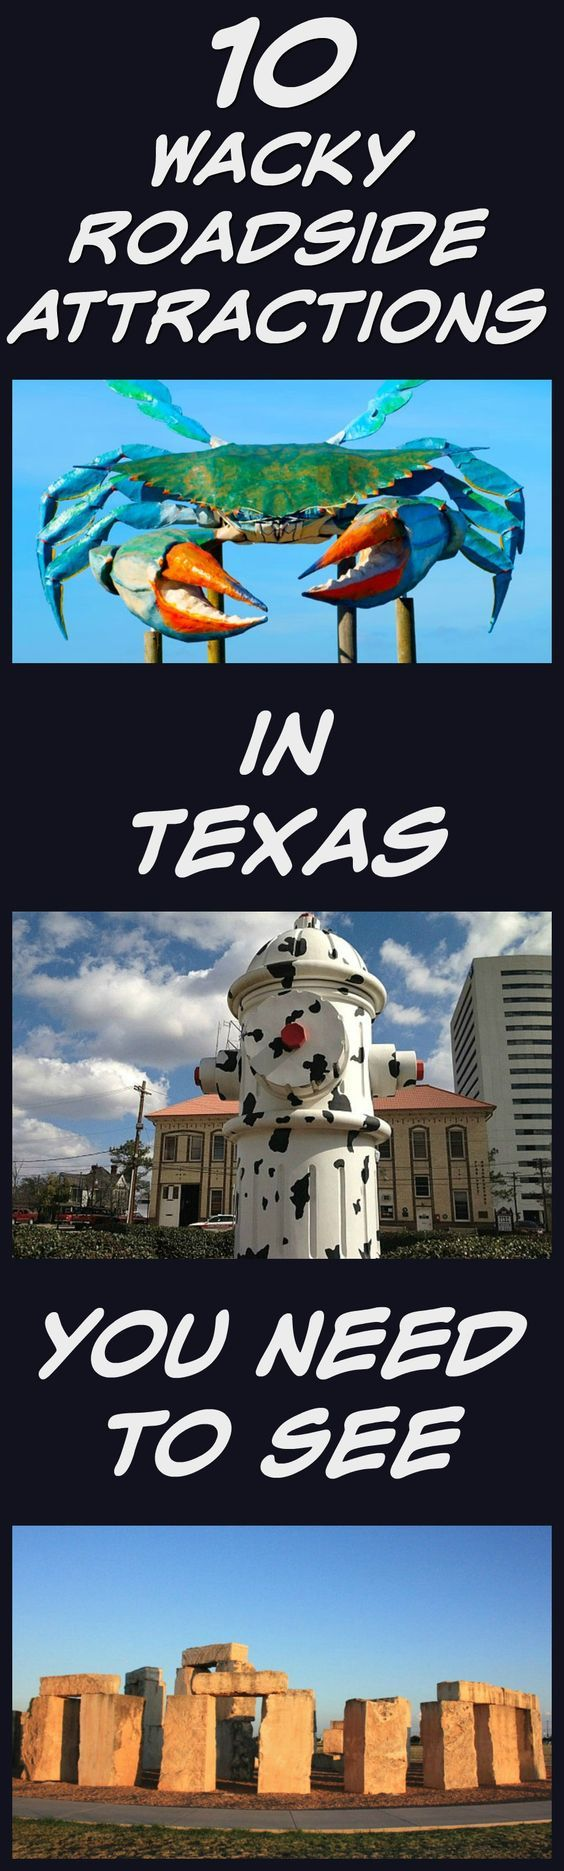 The Lone Star State is full of the unusual and the odd, best shown off by the many wacky roadside attractions in Texas. This list will get you started on your path to the weird side of Texas.